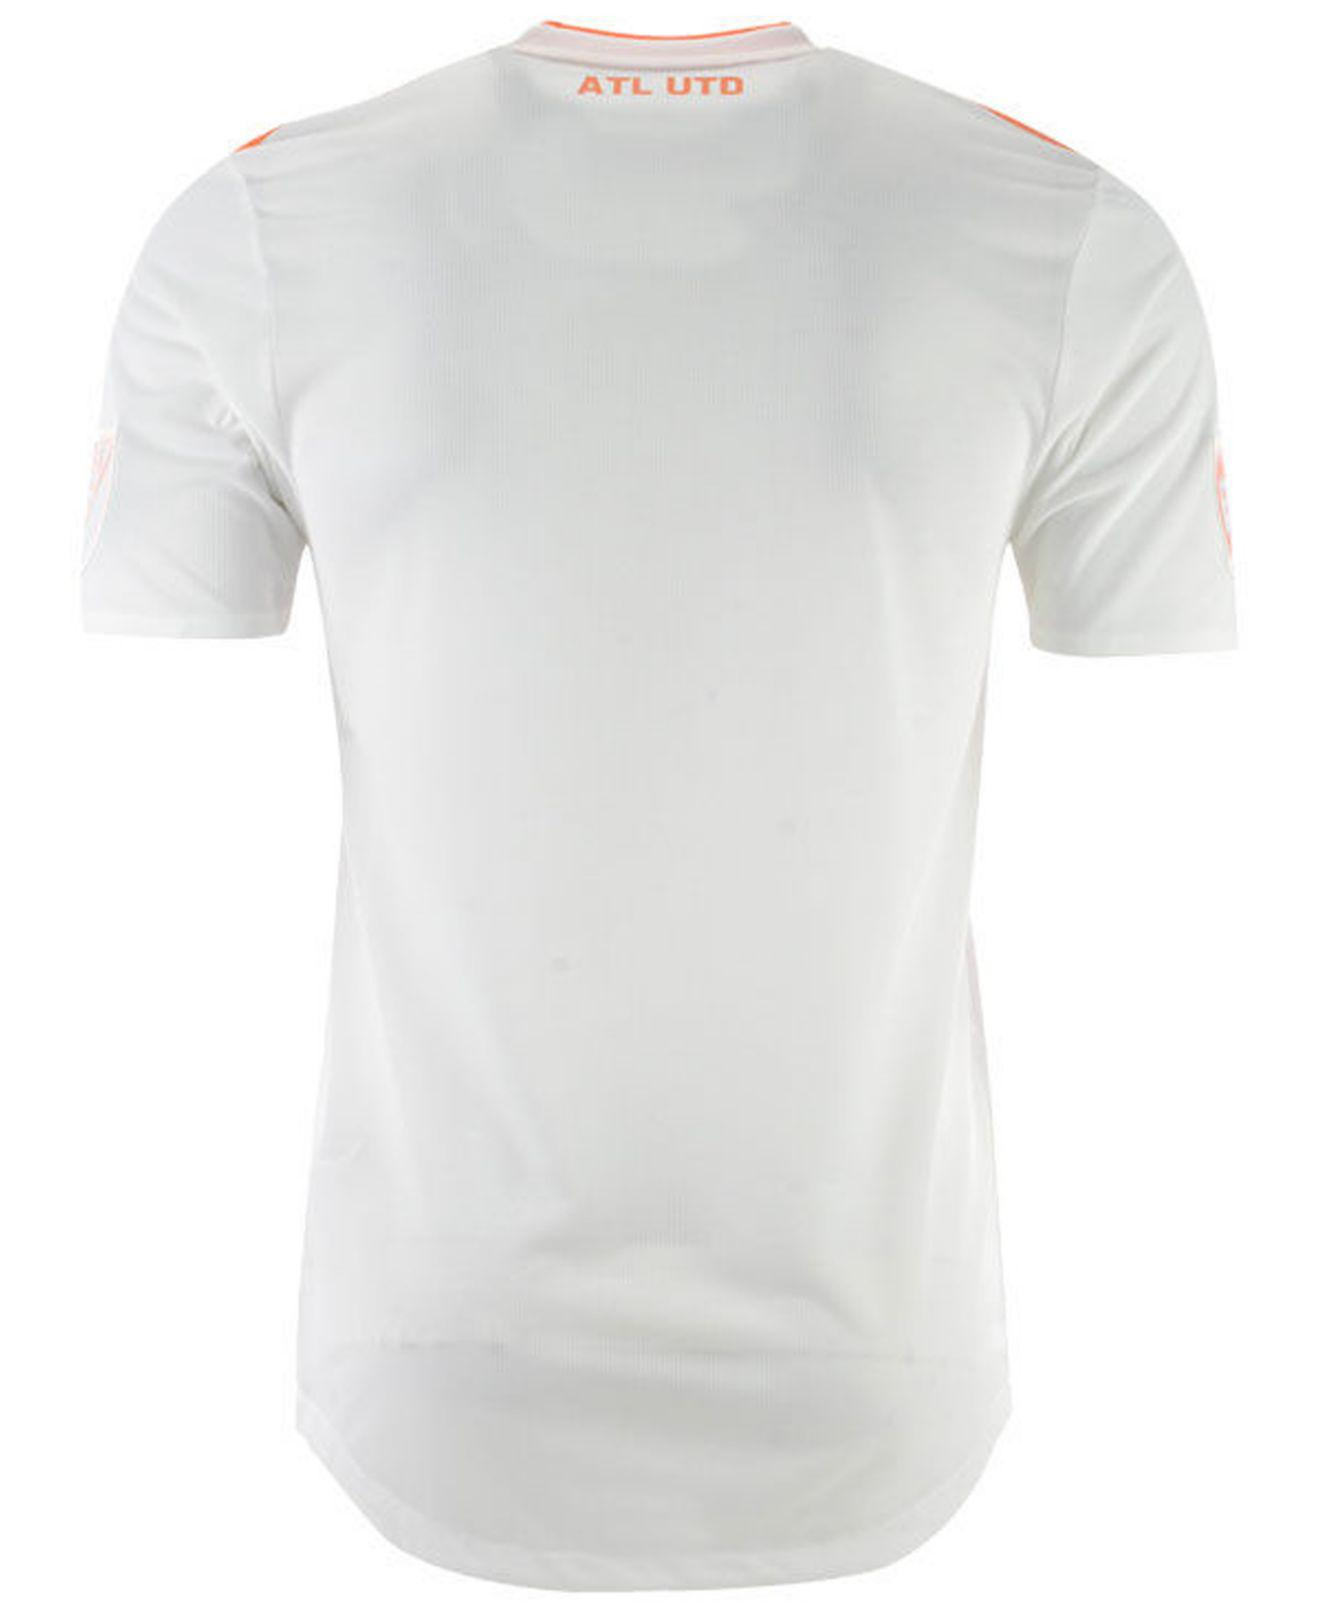 Lyst - adidas Atlanta United Fc Secondary Authentic Jersey in White for Men 72e746c33a6a